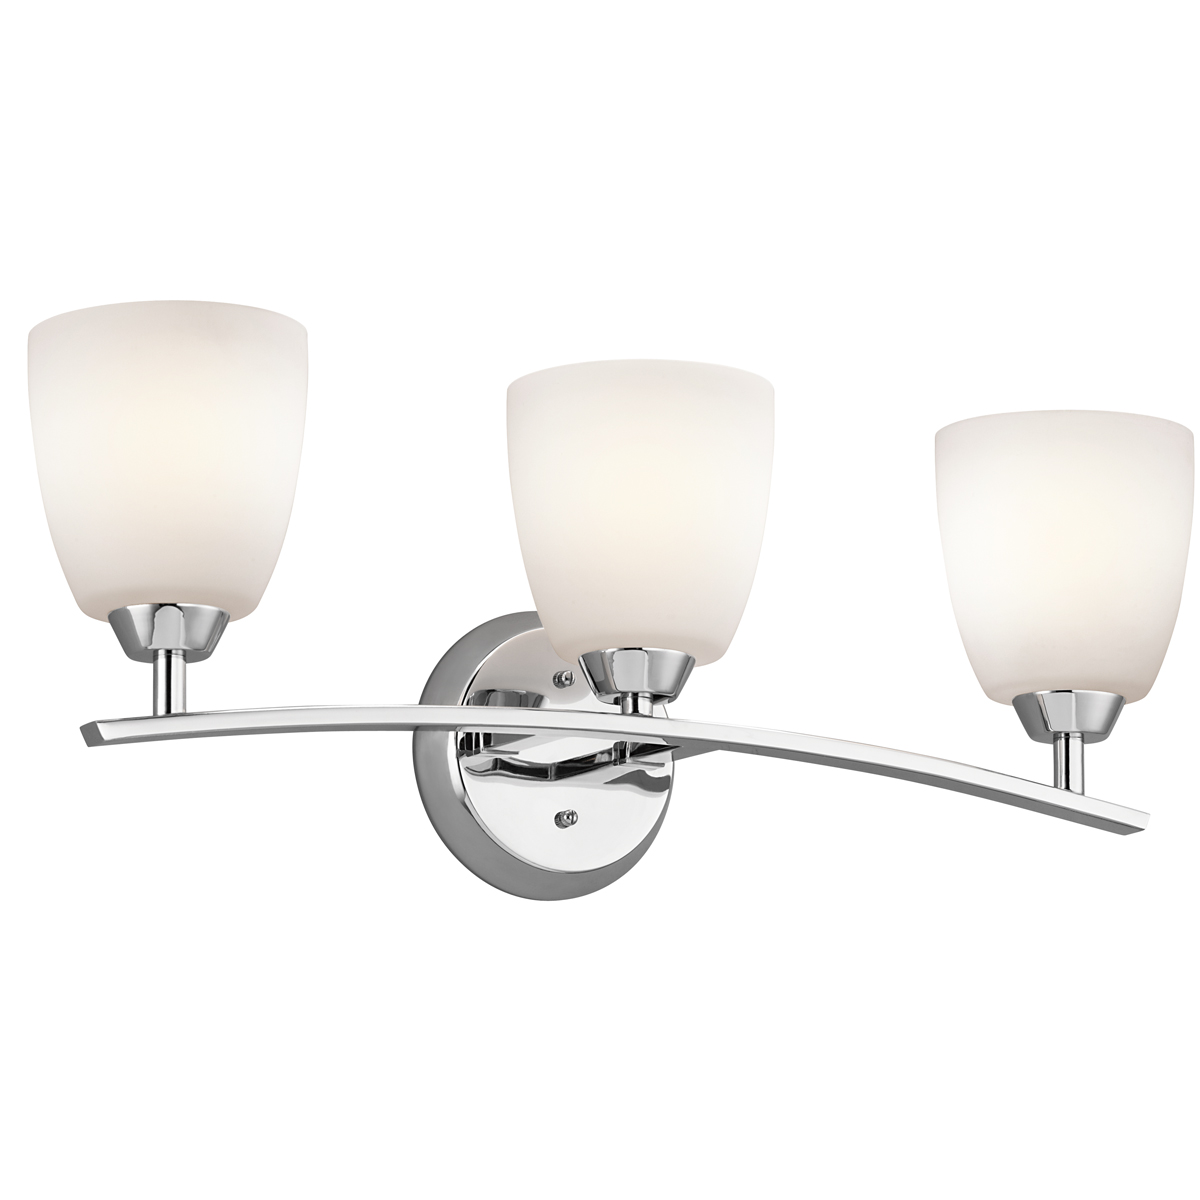 Kichler lighting 45360ch granby 3 light bath fixture in for Bathroom 3 light fixtures